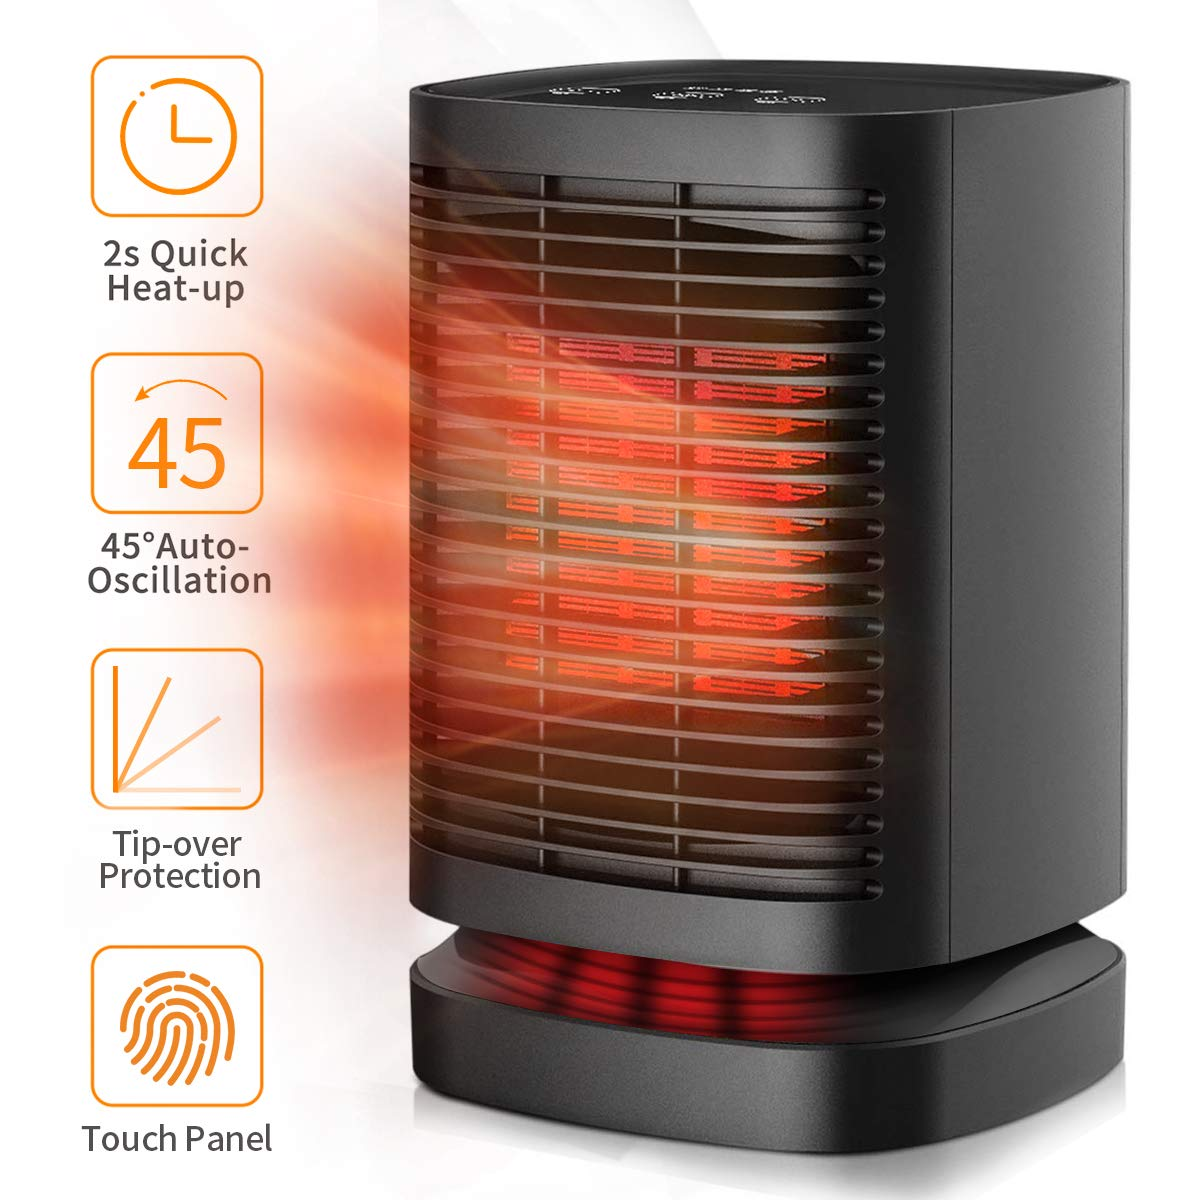 Space Heater, Small Ceramic Portable Personal Quick Heat-up Oscillating Table Fan with Overheat Tip-Over Protection for Home Indoor and Office Desktop, Electric Heater